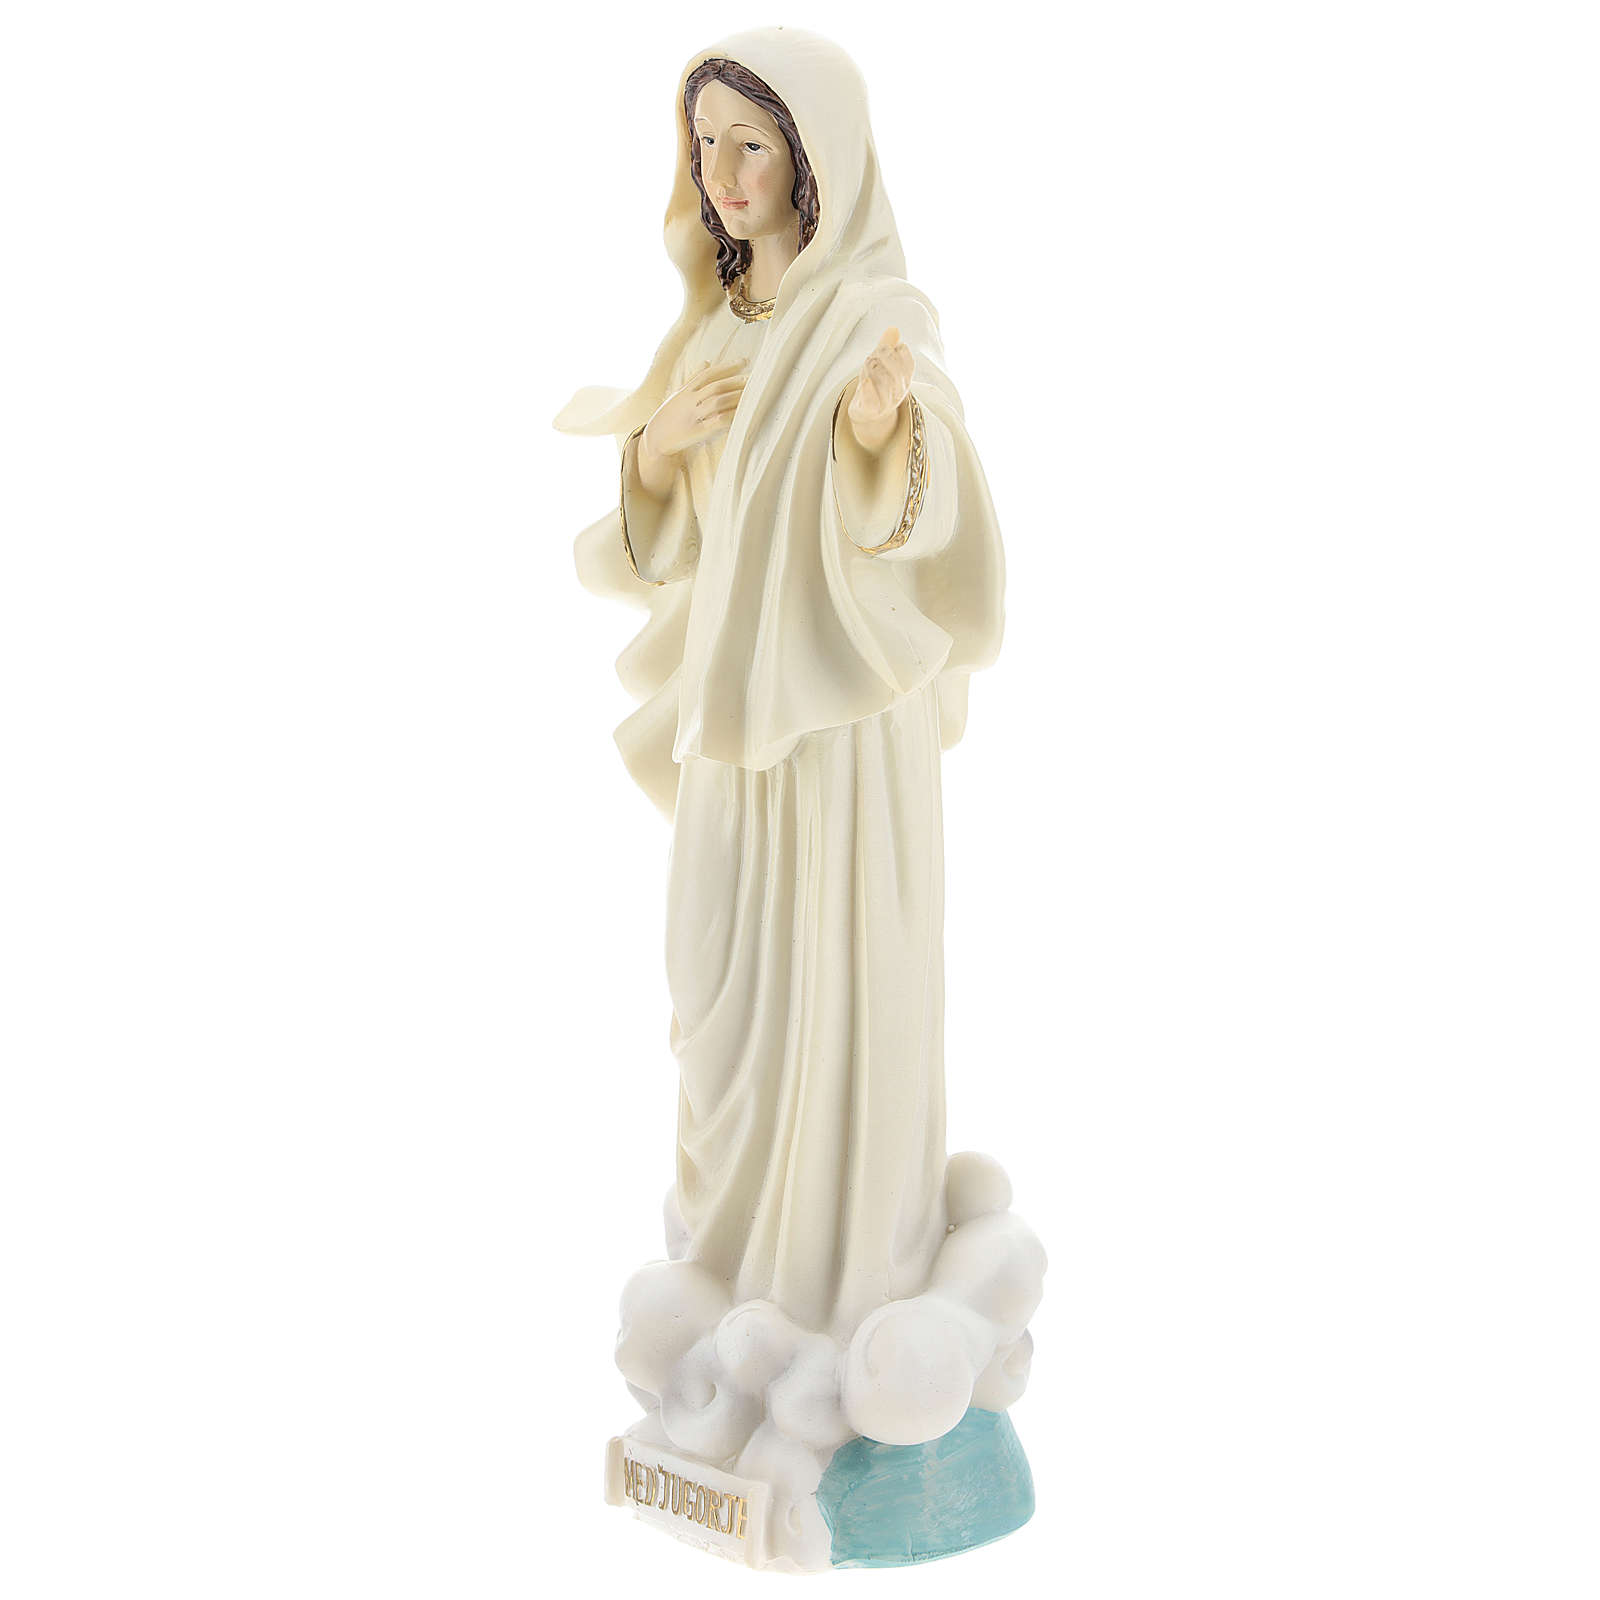 Hand painted resin statue of Our Lady of Medjugorje, Queen of Peace, height 22 cm 4